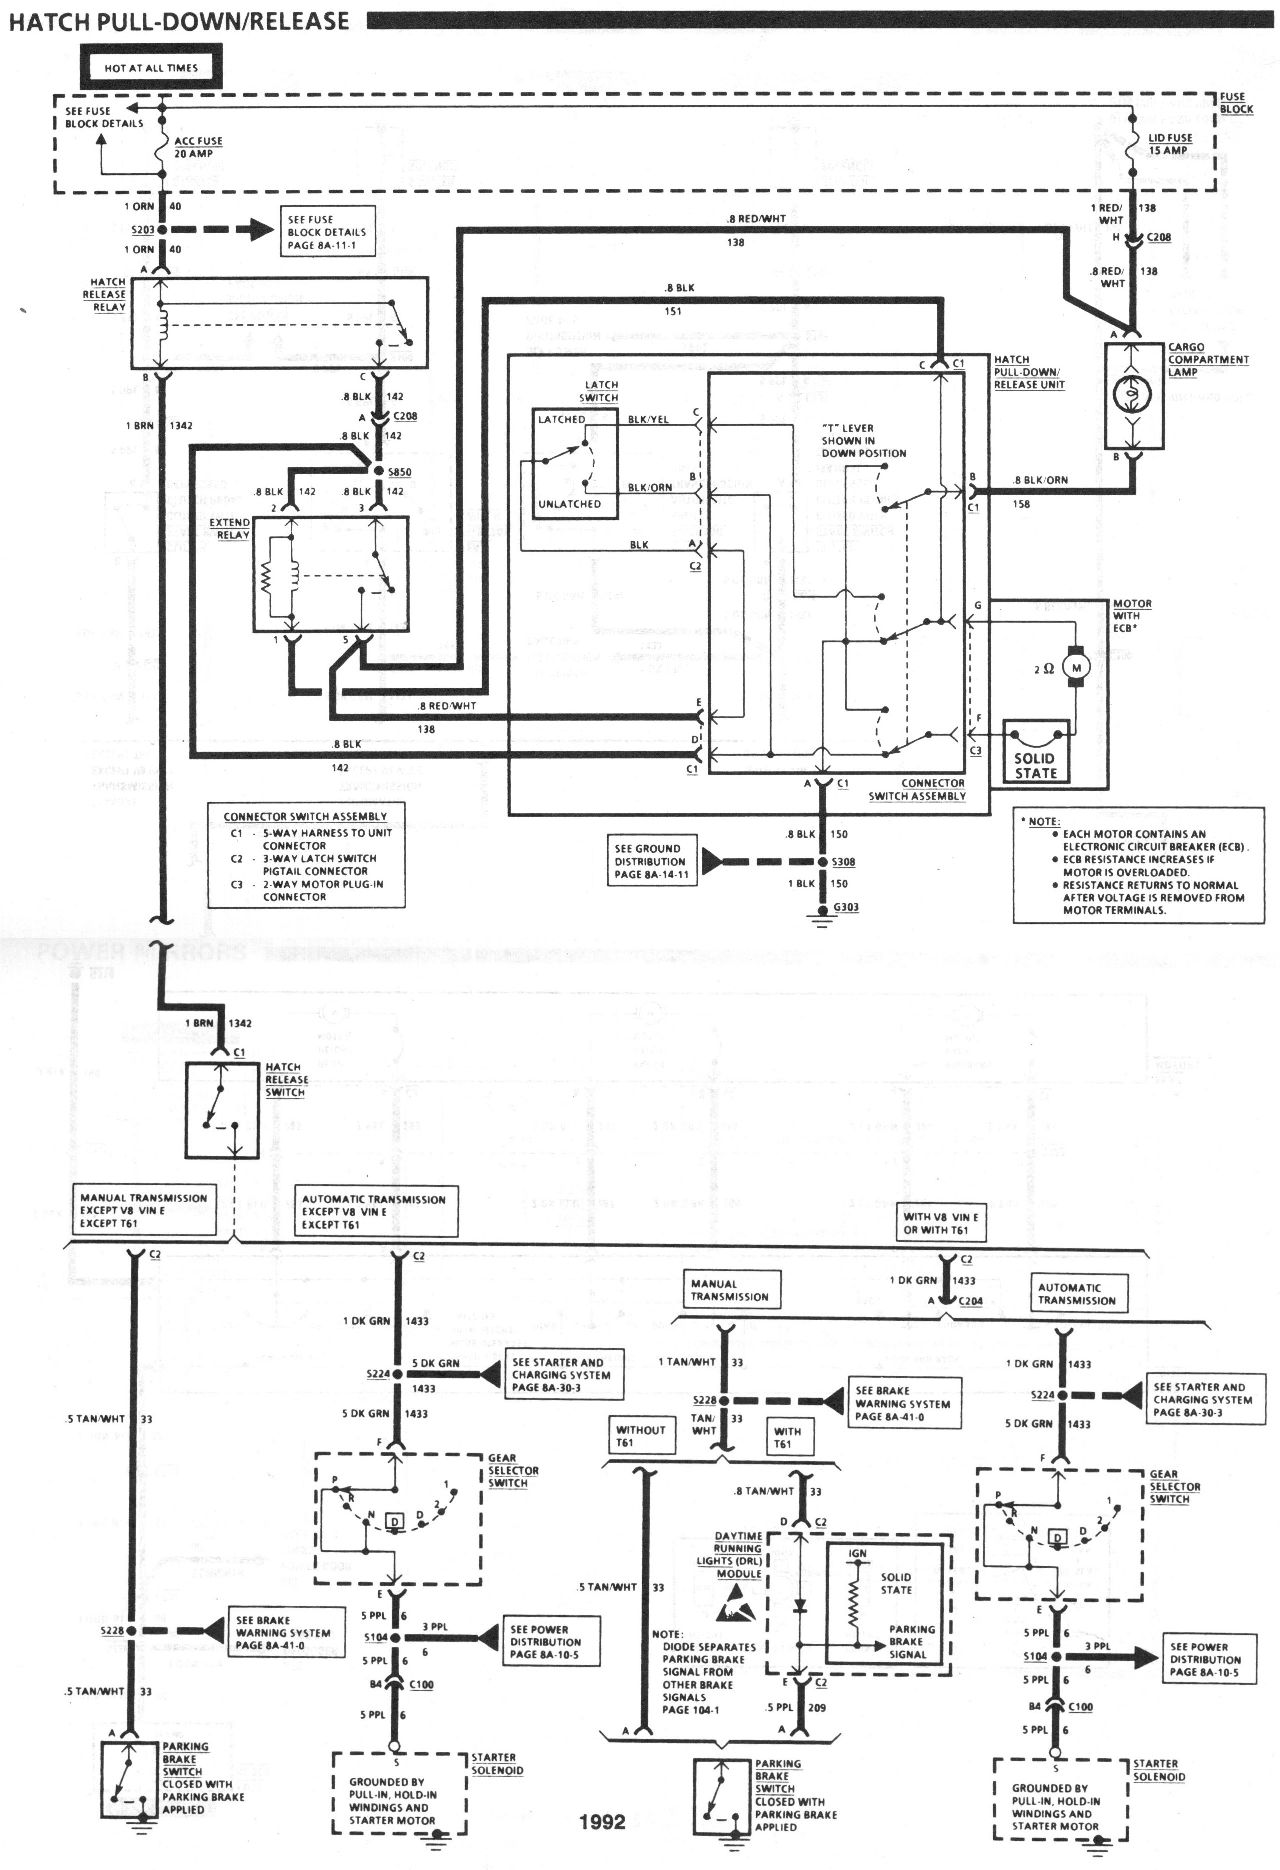 86 Mustang Gt Fuse Box Diagram